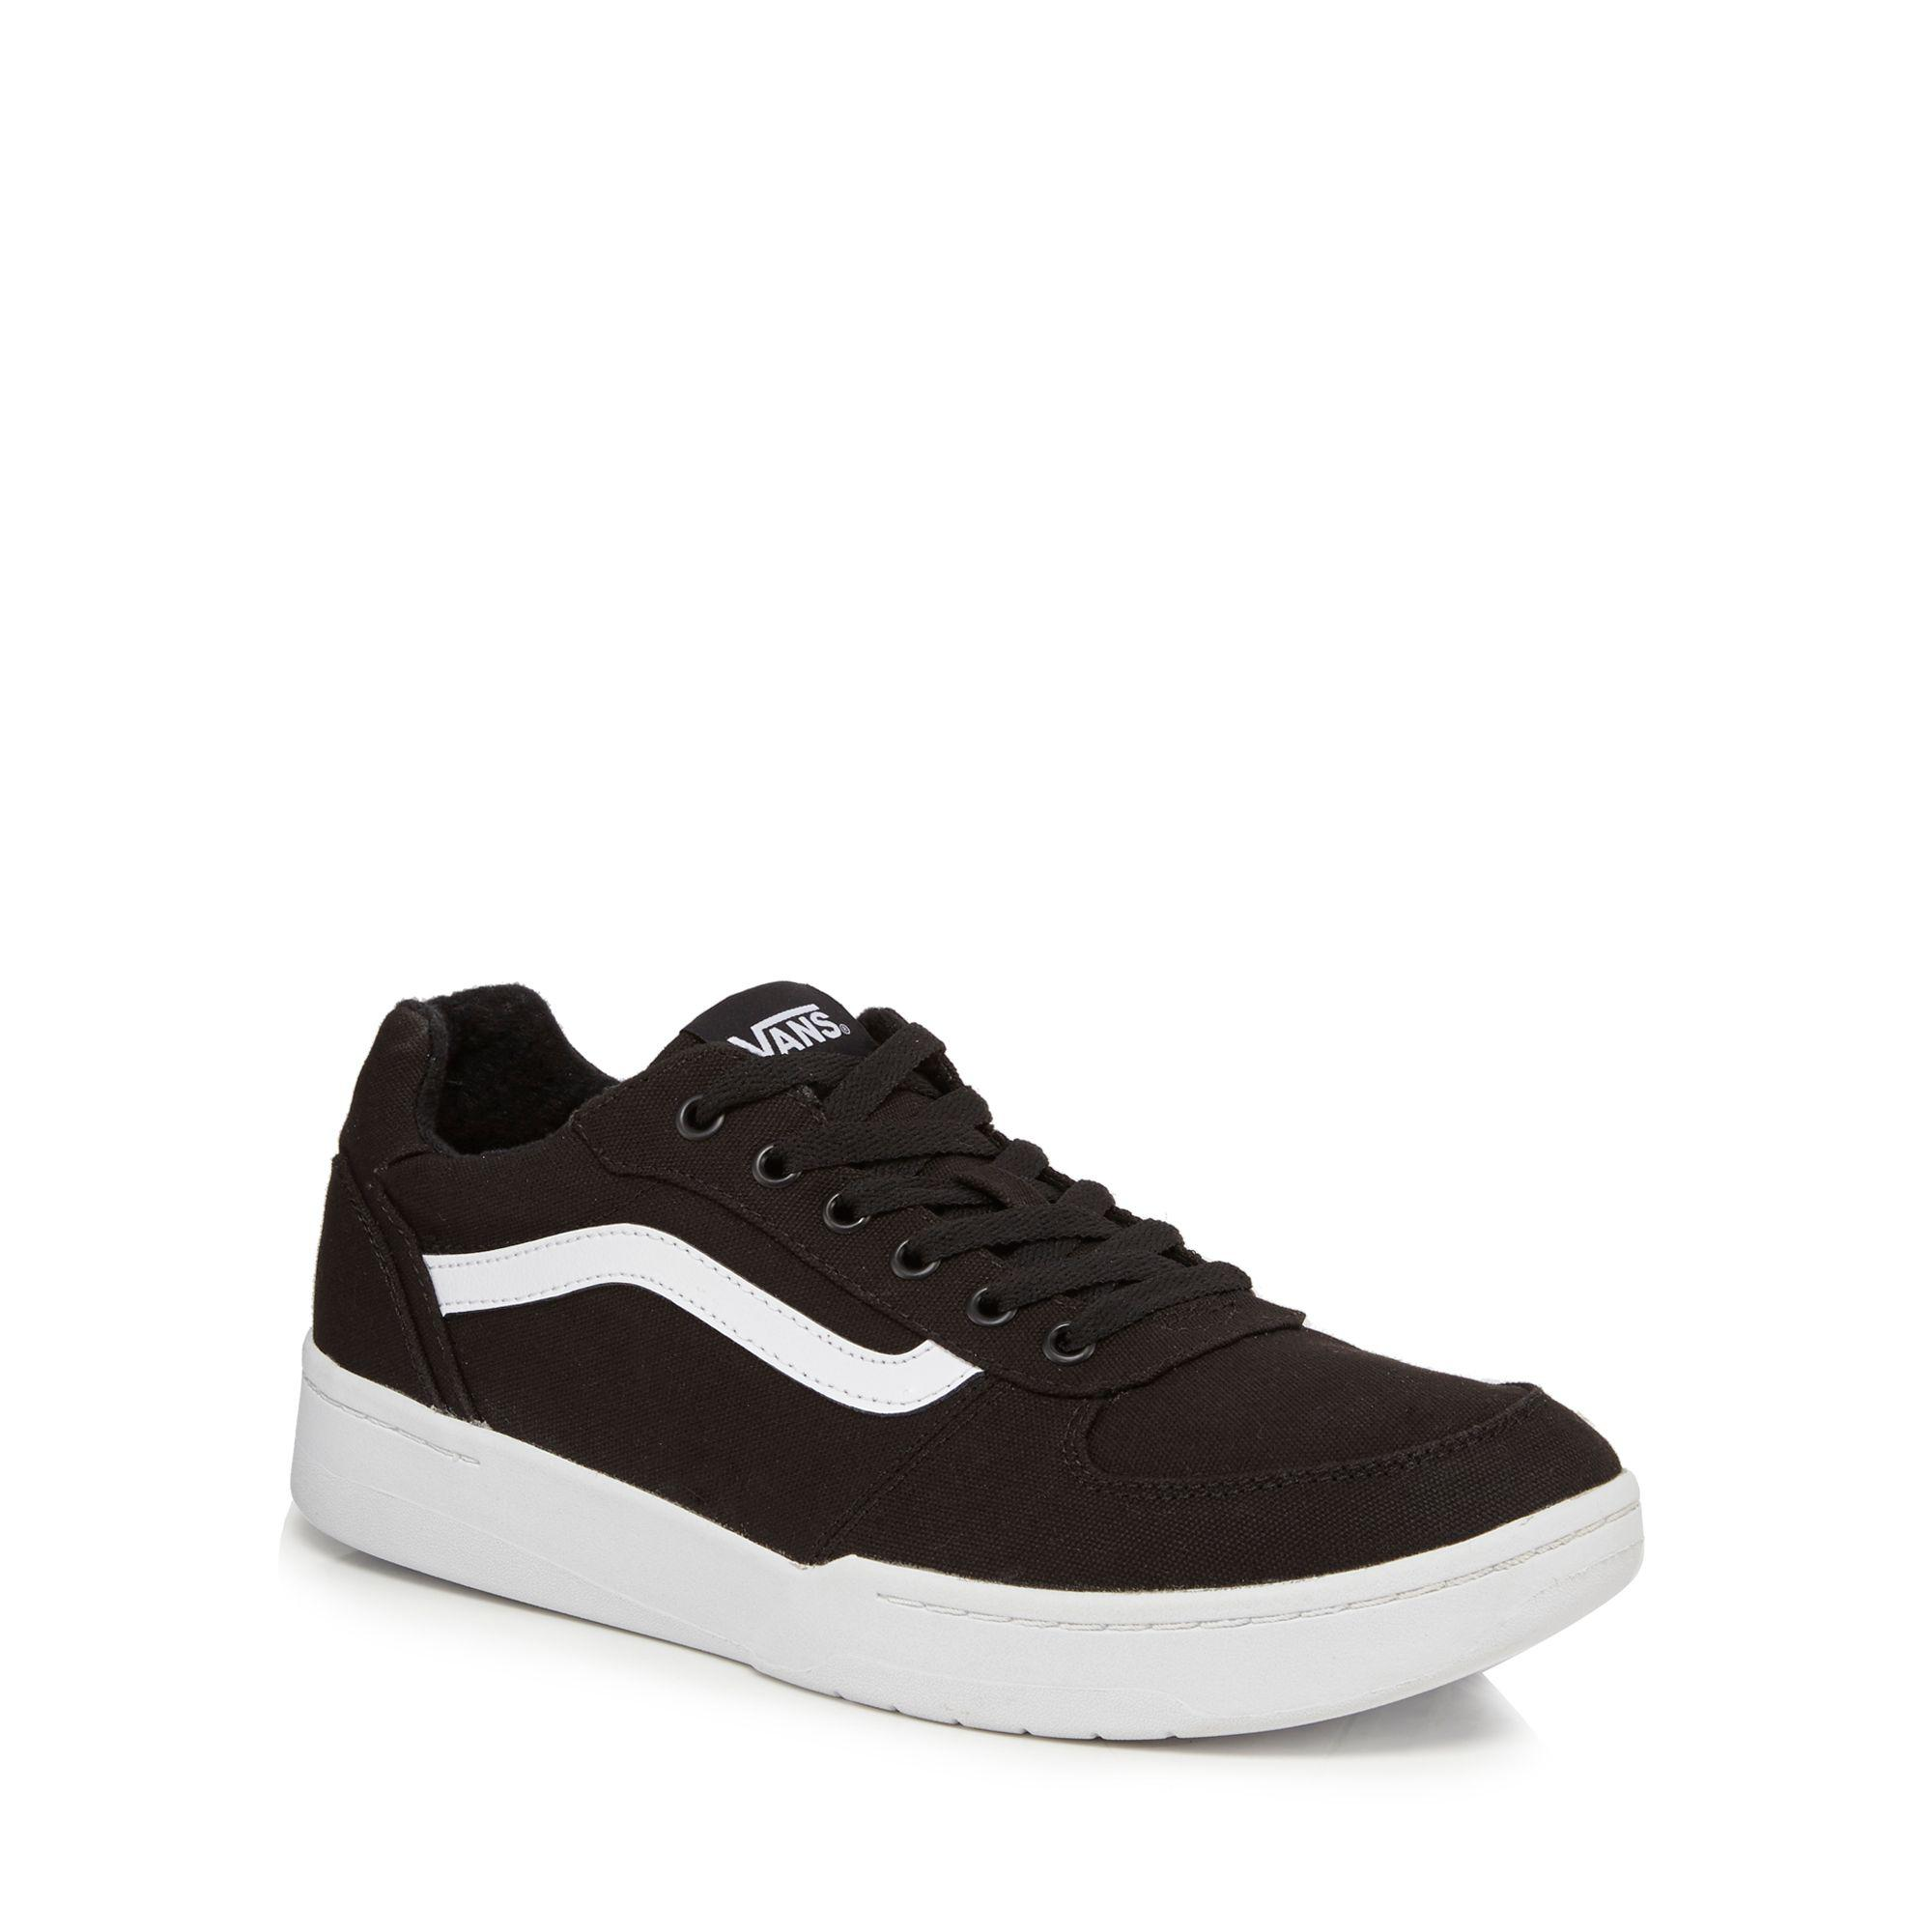 Black 'Knoll' trainers cheap clearance store hot sale for sale online sale online pay with visa sale online CveqWRQ